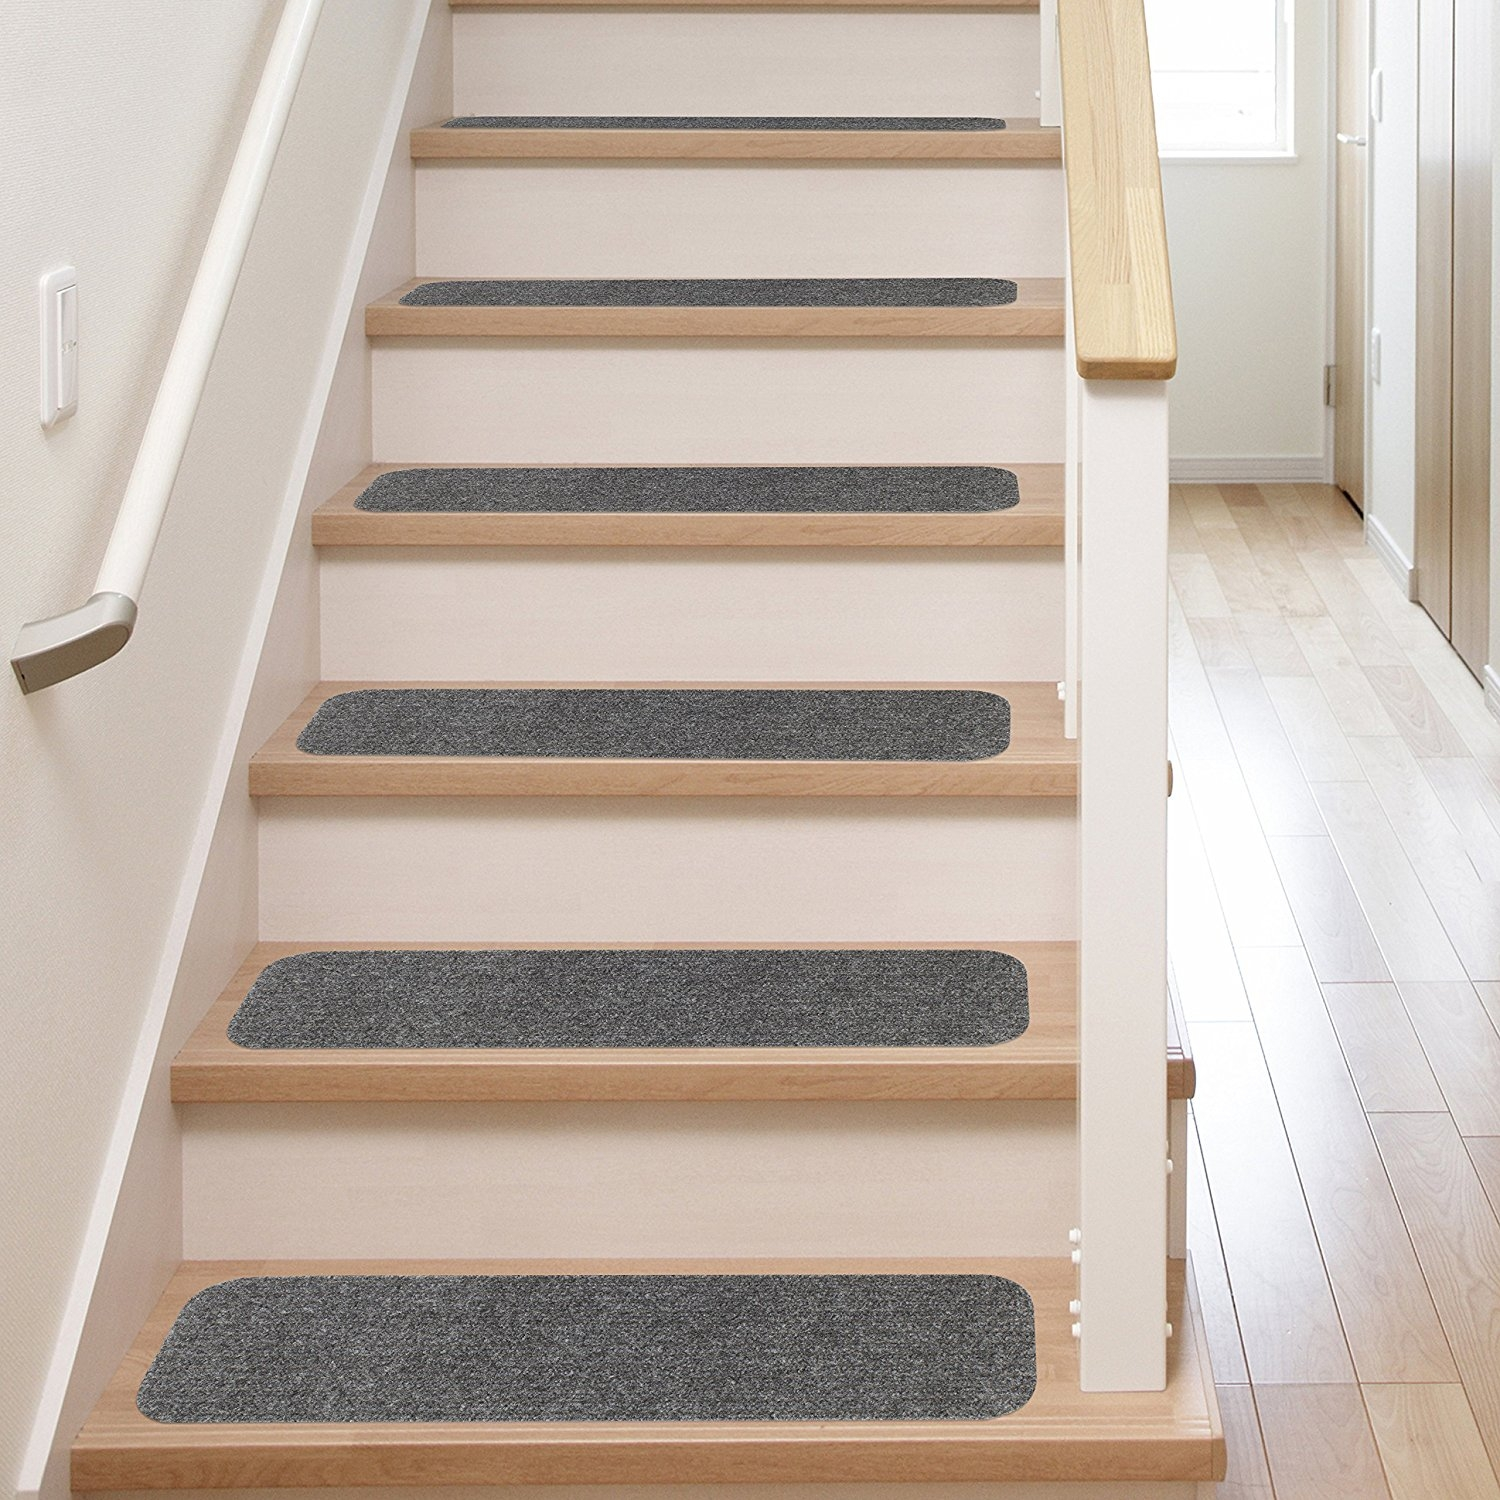 13 Stair Treads Non Slip Carpet Pads Easy Tape Installation Within Carpet Strips For Stairs (Image 1 of 15)